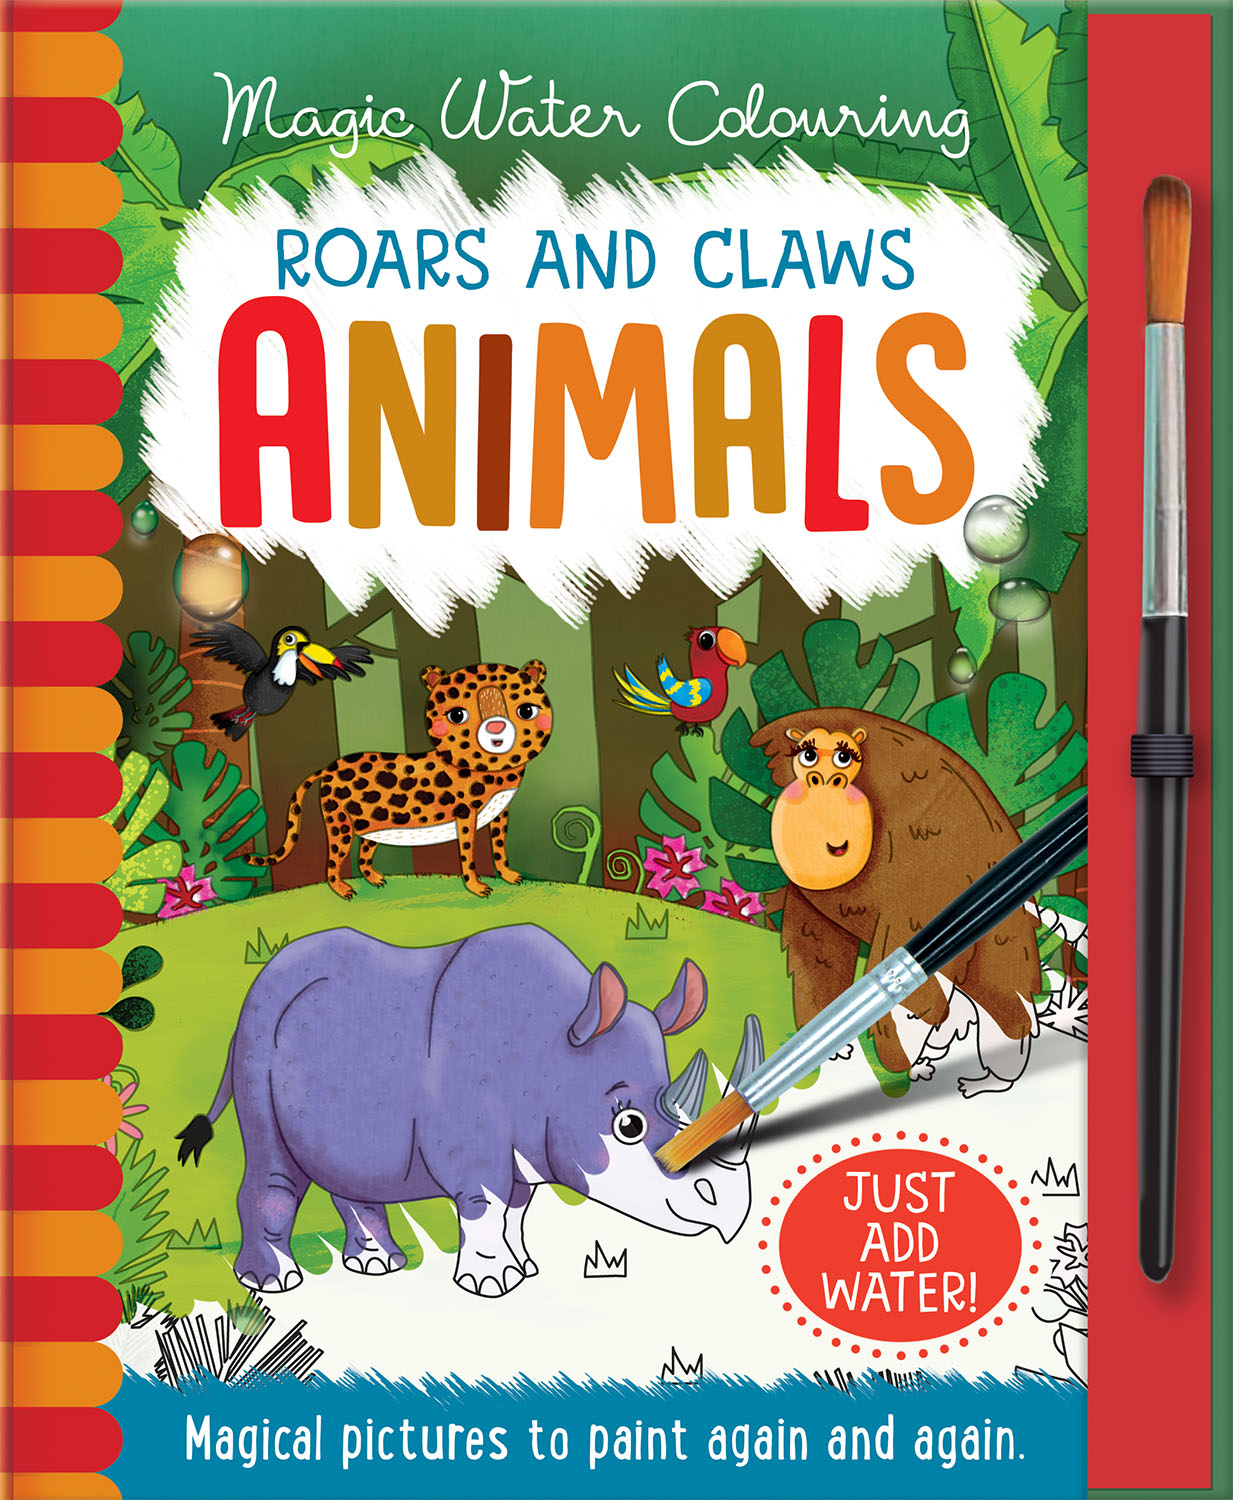 ROARS AND CLAWS - ANIMALS